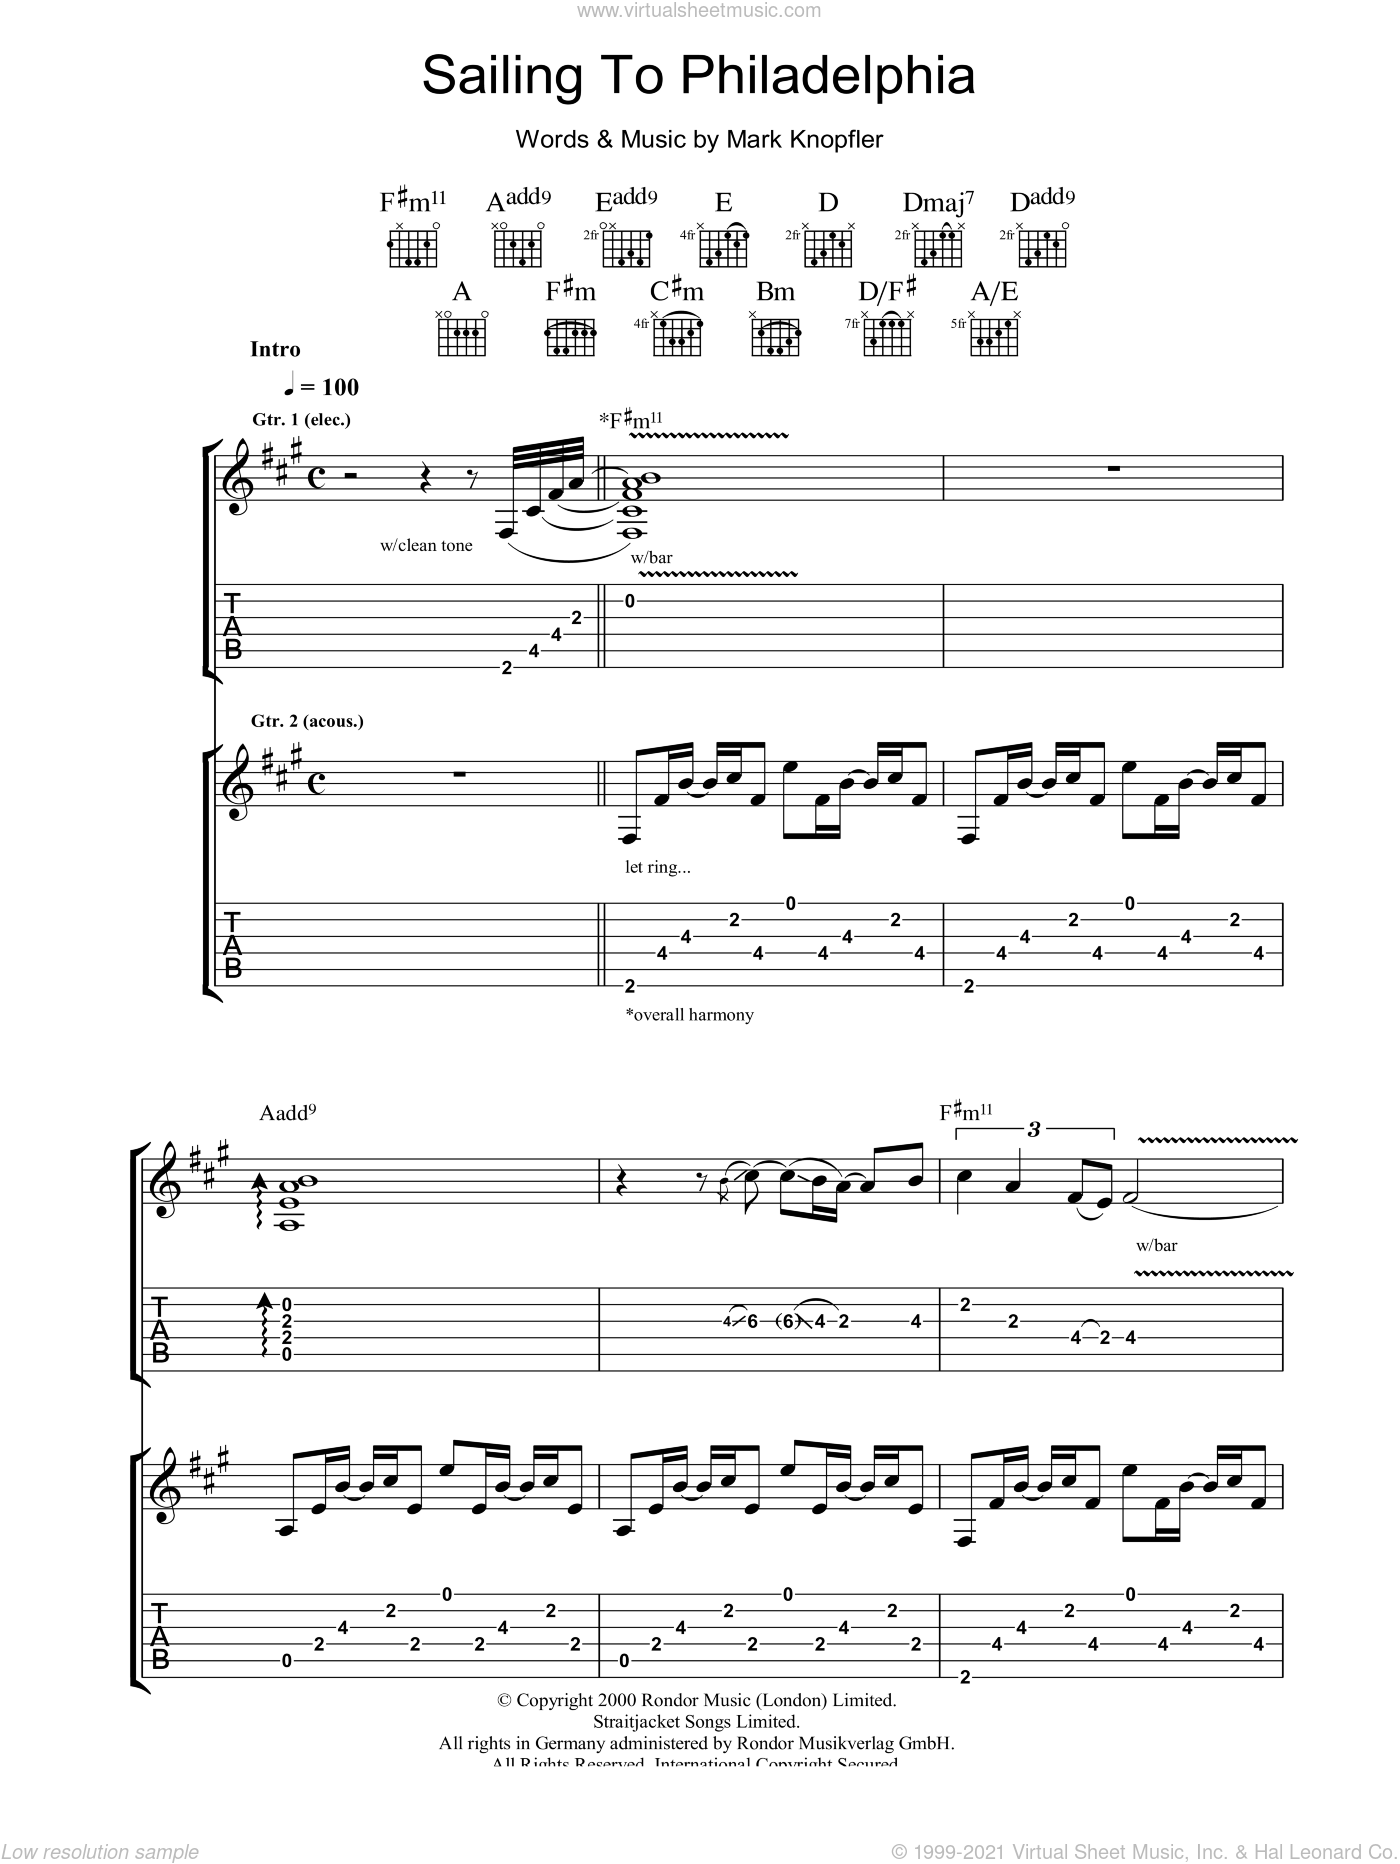 Sailing To Philadelphia sheet music for guitar (tablature) by Mark Knopfler. Score Image Preview.